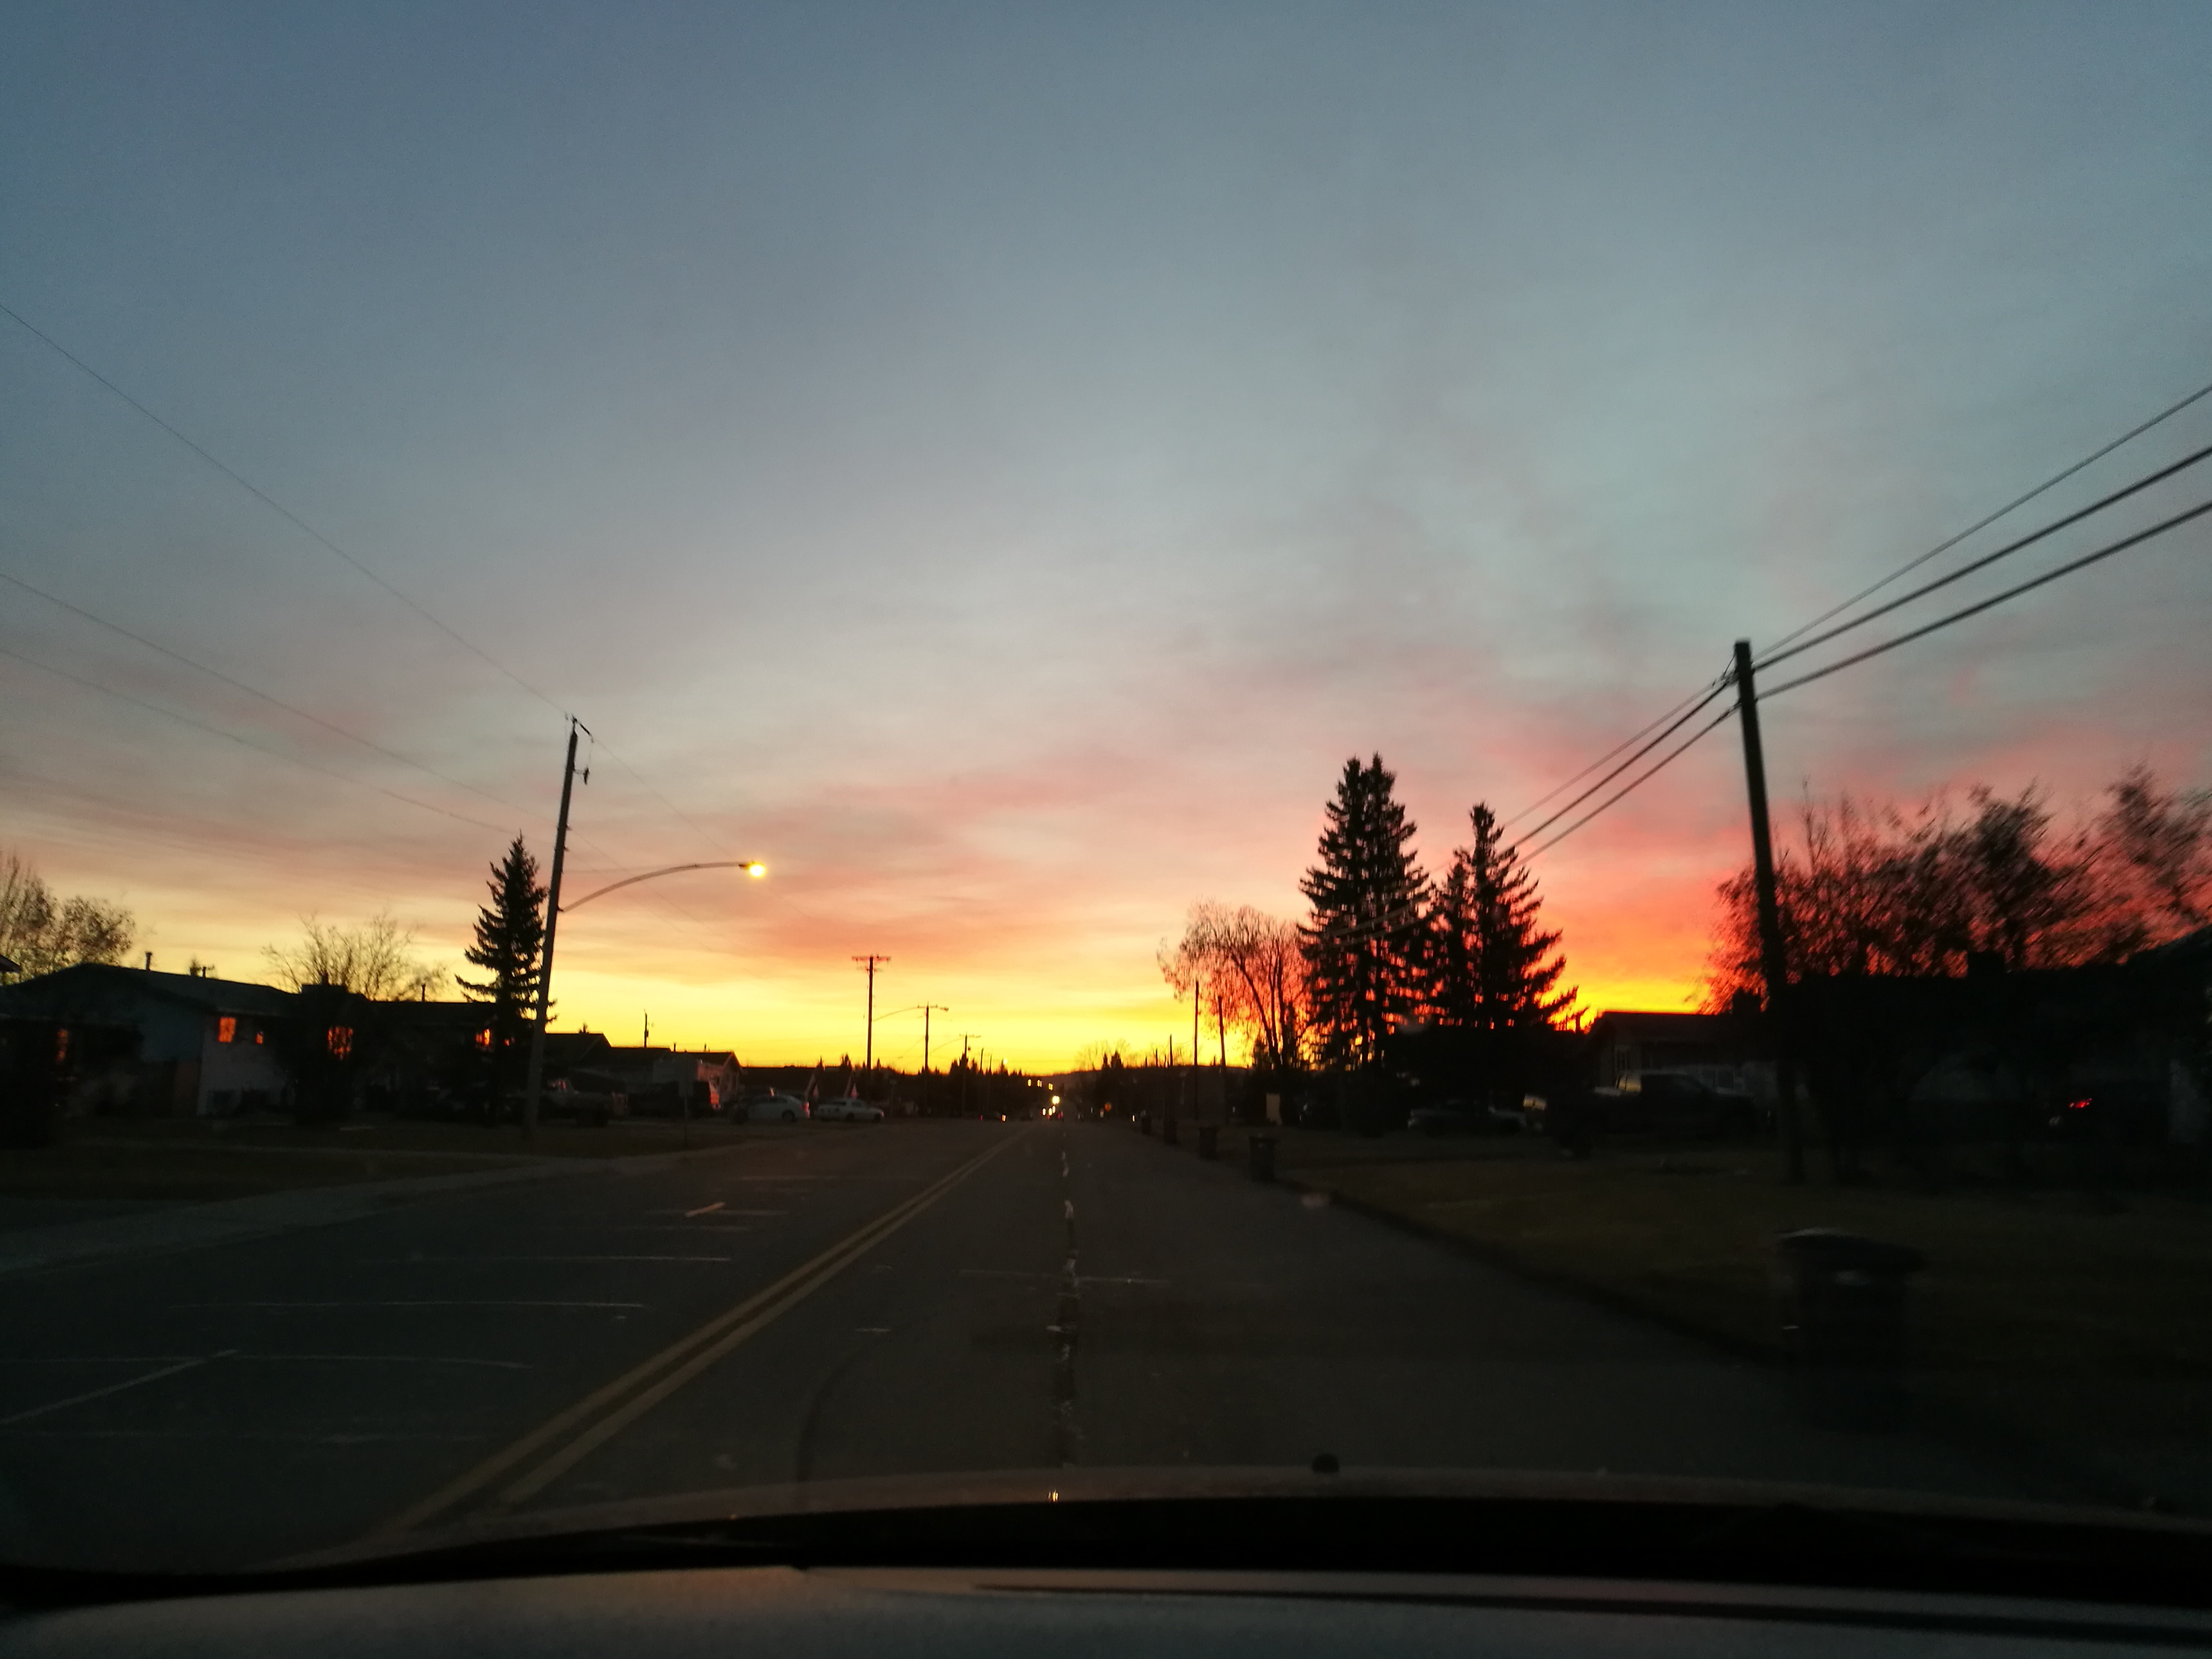 view from the car of sunrise